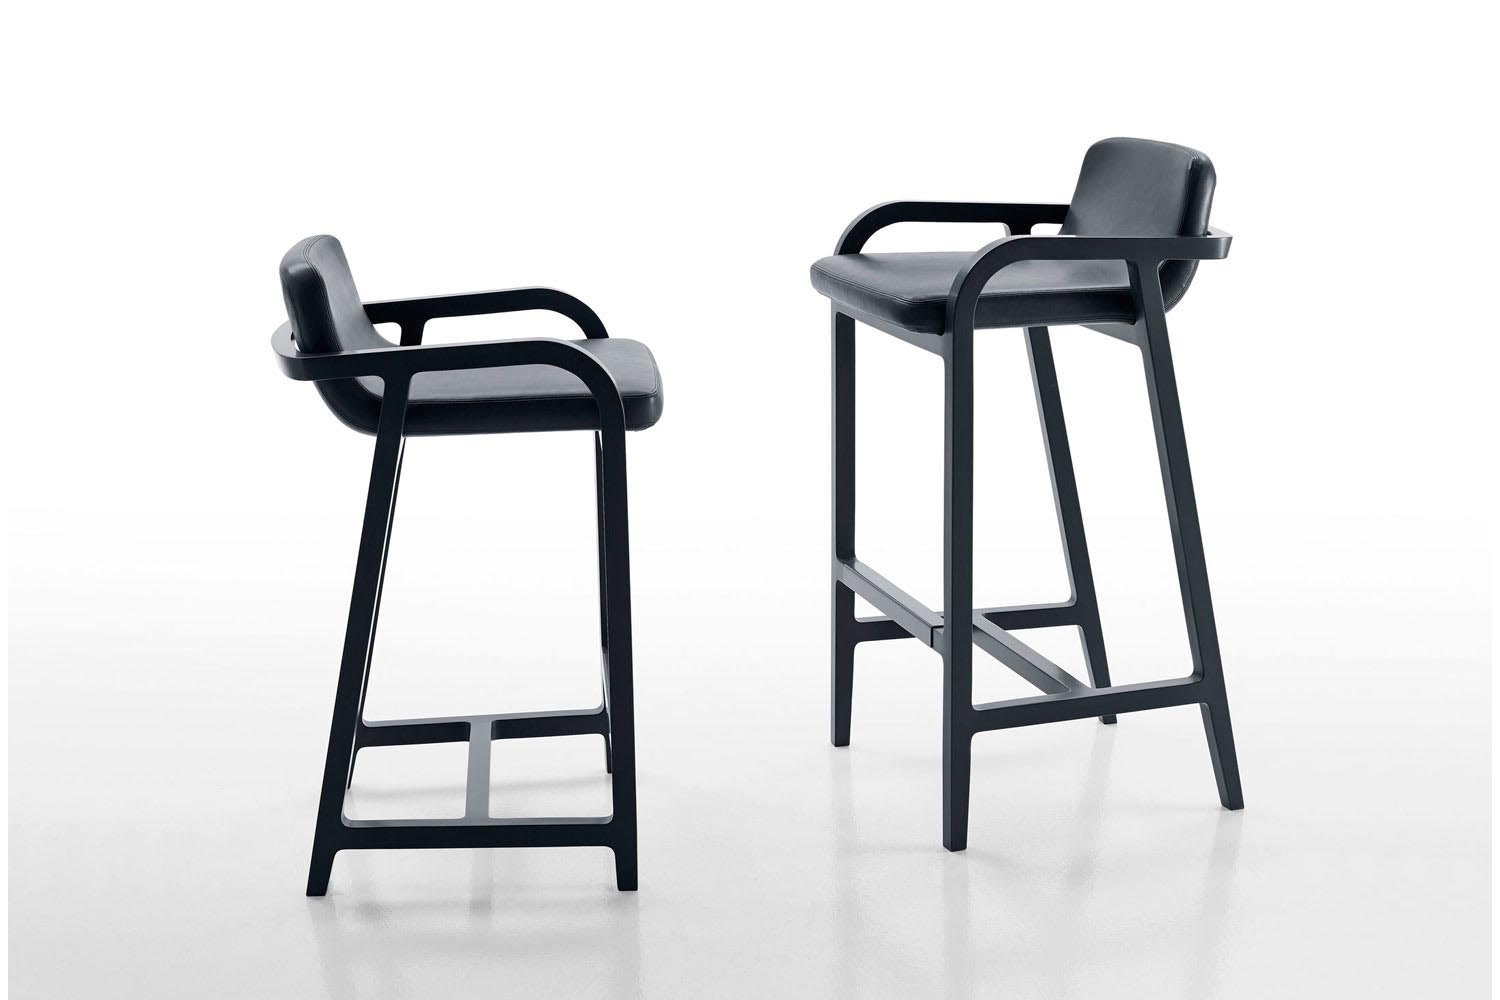 Fulgens '15 Stool by Antonio Citterio for Maxalto